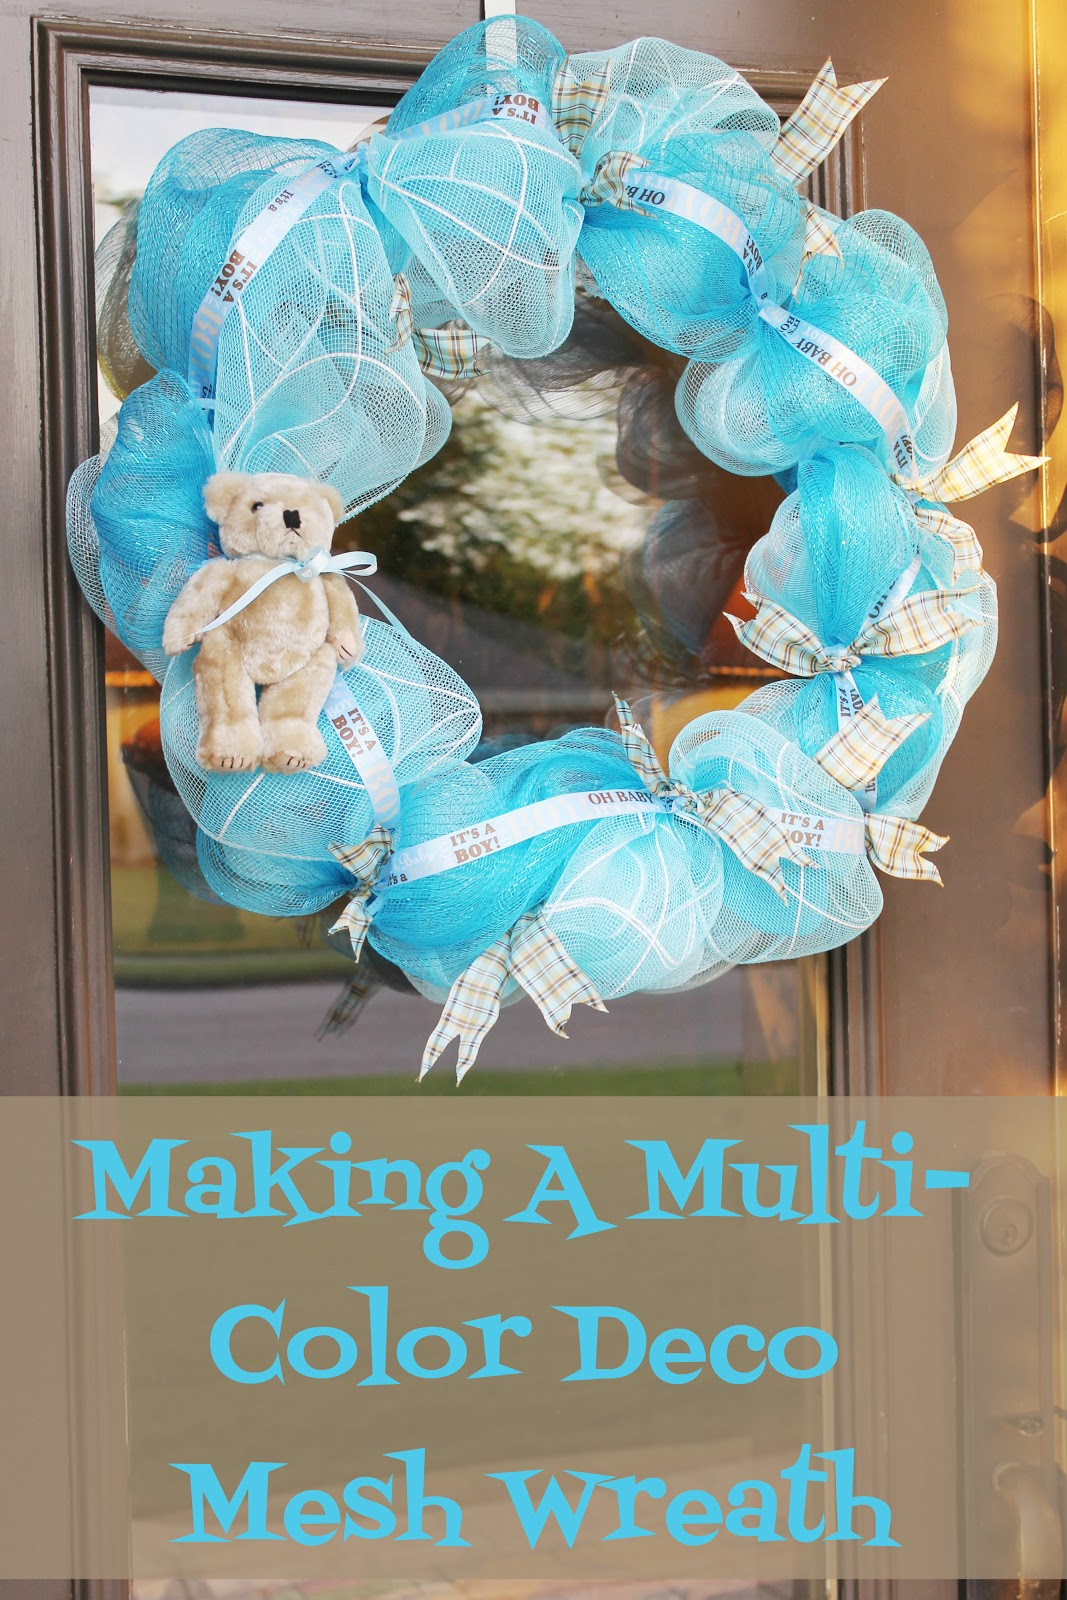 Geo mesh wreath form - How To Make A Deco Mesh Wreath